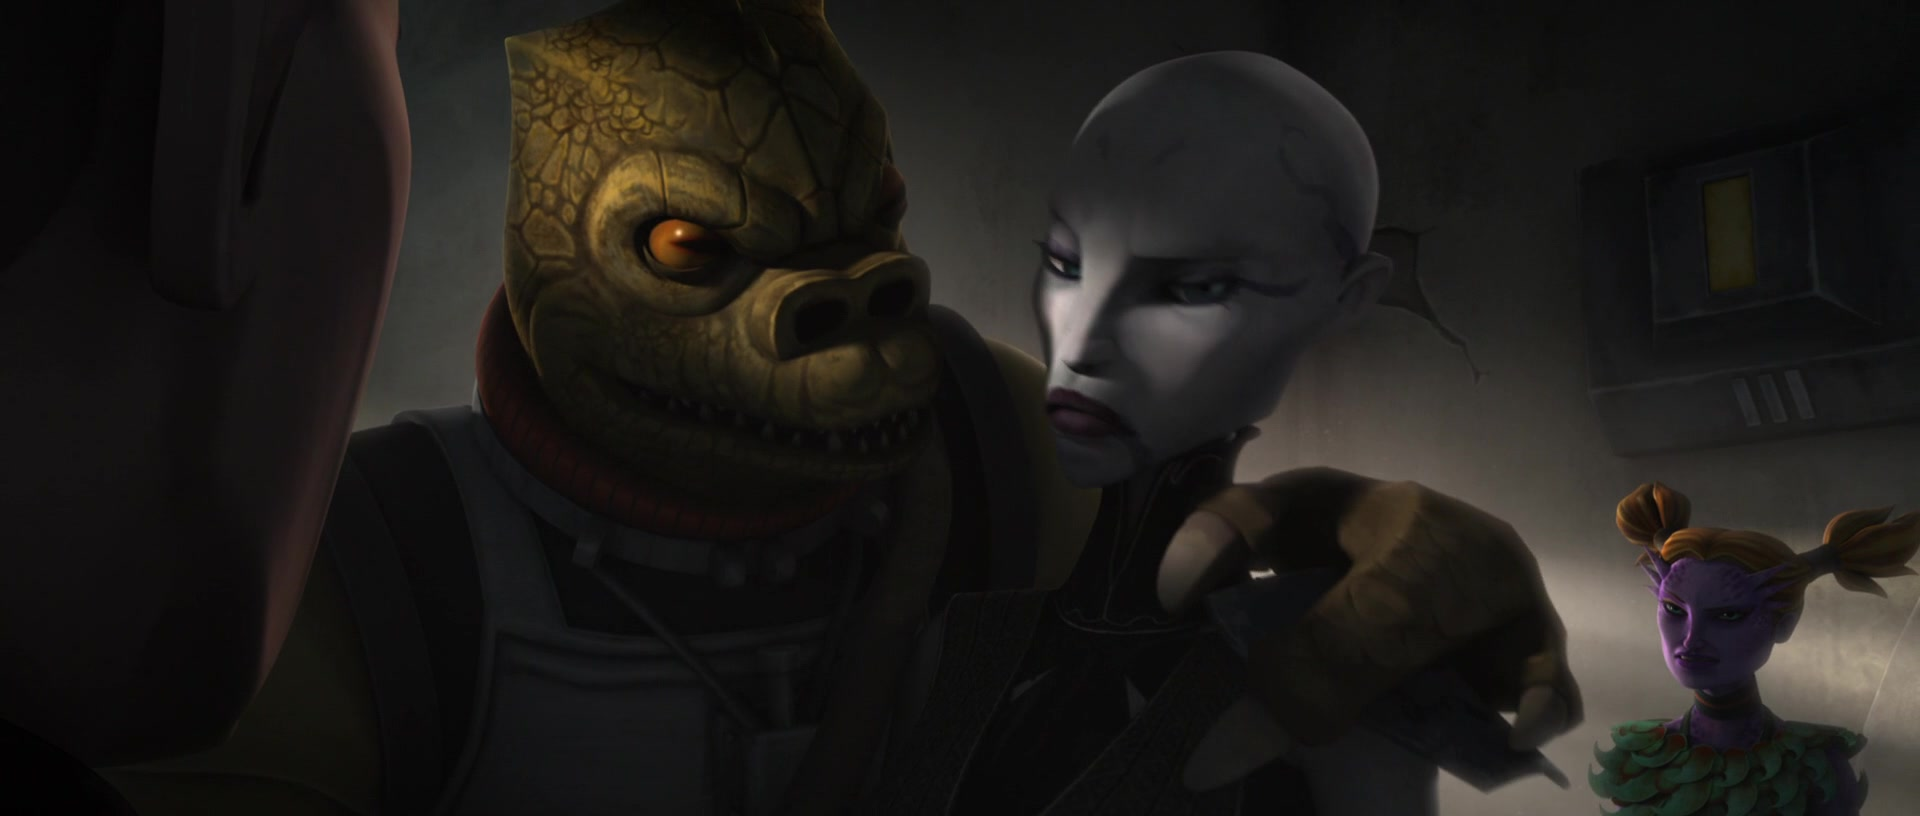 star wars series the clone wars s4e20 bounty bossk asajj ventress latts razzi